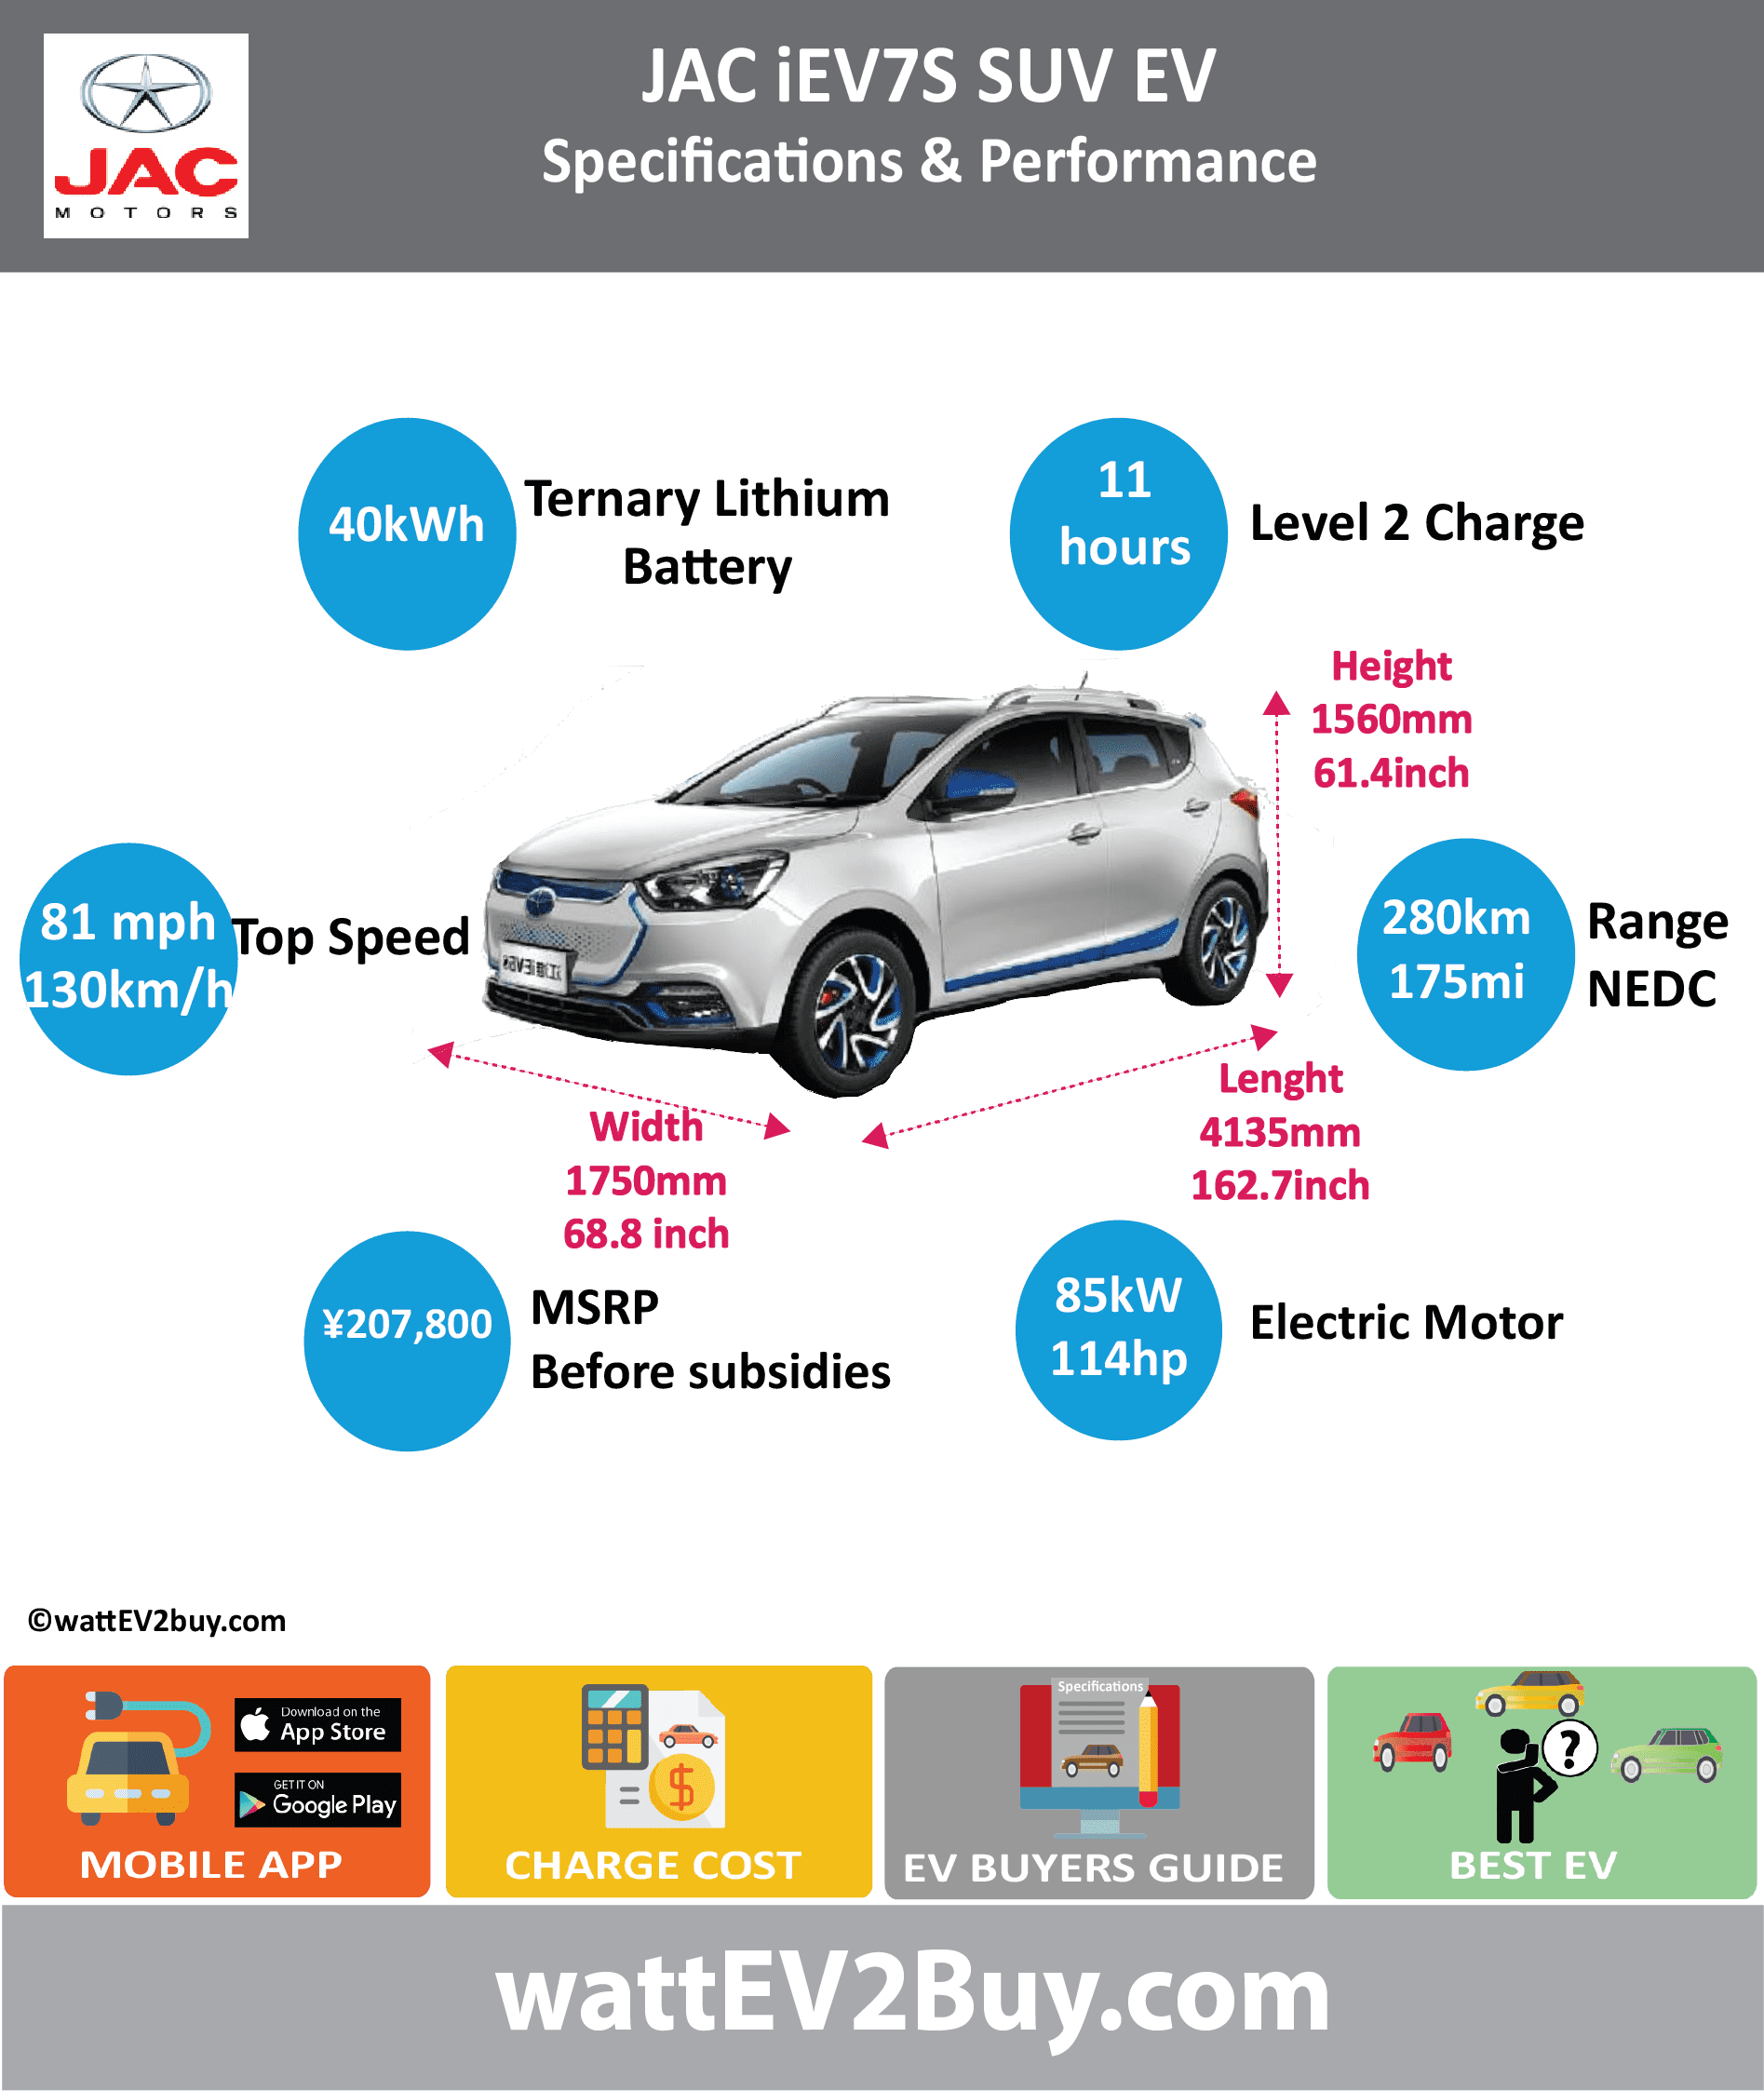 JAC iEV7S SUV EV	specs wattev2Buy.com	2017 Battery Chemistry	Ternary Battery Capacity kWh	40 Battery Nominal rating kWh	 Voltage V	 Amps Ah	86.4 Cells	3000 Modules	 Weight (kg)	 Cell Type	 Cooling	Liquid Battery Type	Perm Mag Syncro Cycles	 Depth of Discharge (DOD)	 Energy Density Wh/kg	 Battery Manufacturer	Huating (Hefei) Power Technology Co., Ltd. Battery Warranty - years	 Battery Warranty - km	 Battery Electric Range - at constant 38mph	 Battery Electric Range - at constant 60km/h	 Battery Electric Range - NEDC Mi	175 Battery Electric Range - NEDC km	280 Electric Top Speed - mph	81 Electric Top Speed - km/h	130 Acceleration 0 - 100km/h sec	11 Acceleration 0 - 50km/h sec	3.9 Onboard Charger kW	 LV 1 Charge kW	 LV 1 Charge Time (Hours)	11 LV 2 Charge kW	 LV 2 Charge Time (Hours)	 LV 3 CCS/Combo kW	 LV 3 Charge Time (min to 80%)	60 Charge Connector	 MPGe Combined - miles	 MPGe Combined - km	 MPGe City - miles	 MPGe City - km	 MPGe Highway - miles	 MPGe Highway - km	 Max Power - hp	114 Max Power - kW	85 Max Torque - lb.ft	 Max Torque - N.m	270 Drivetrain	 Electric Motor - Rear	 Electric Motor - Front	 Motor Type	 Electric Motor Output kW	 Transmission	 Energy Consumption kWh/100km	 CHINA MSRP (before incentives & destination)	 ¥207,100.00  MSRP after incentives	 Vehicle	 Doors	 Seating	5 Dimensions	 GVWR (kg)	1685 Curb Weight (kg)	1310 Payload Capacity (lbs)	 Towing Capacity (lbs)	 Ground Clearance (mm)	150 Lenght (mm)	4135 Width (mm)	1750 Height (mm)	1560 Wheelbase (mm)	2490 Lenght (inc)	162.7 Width (inc)	68.8 Height (inc)	61.4 Wheelbase (inc)	97.9 Other	 Market	 Class	SUV Incentives	 Safety Level	 Chinese Name	江淮iEV7S Model Code	HFC7001EAEV2 WEBSITE